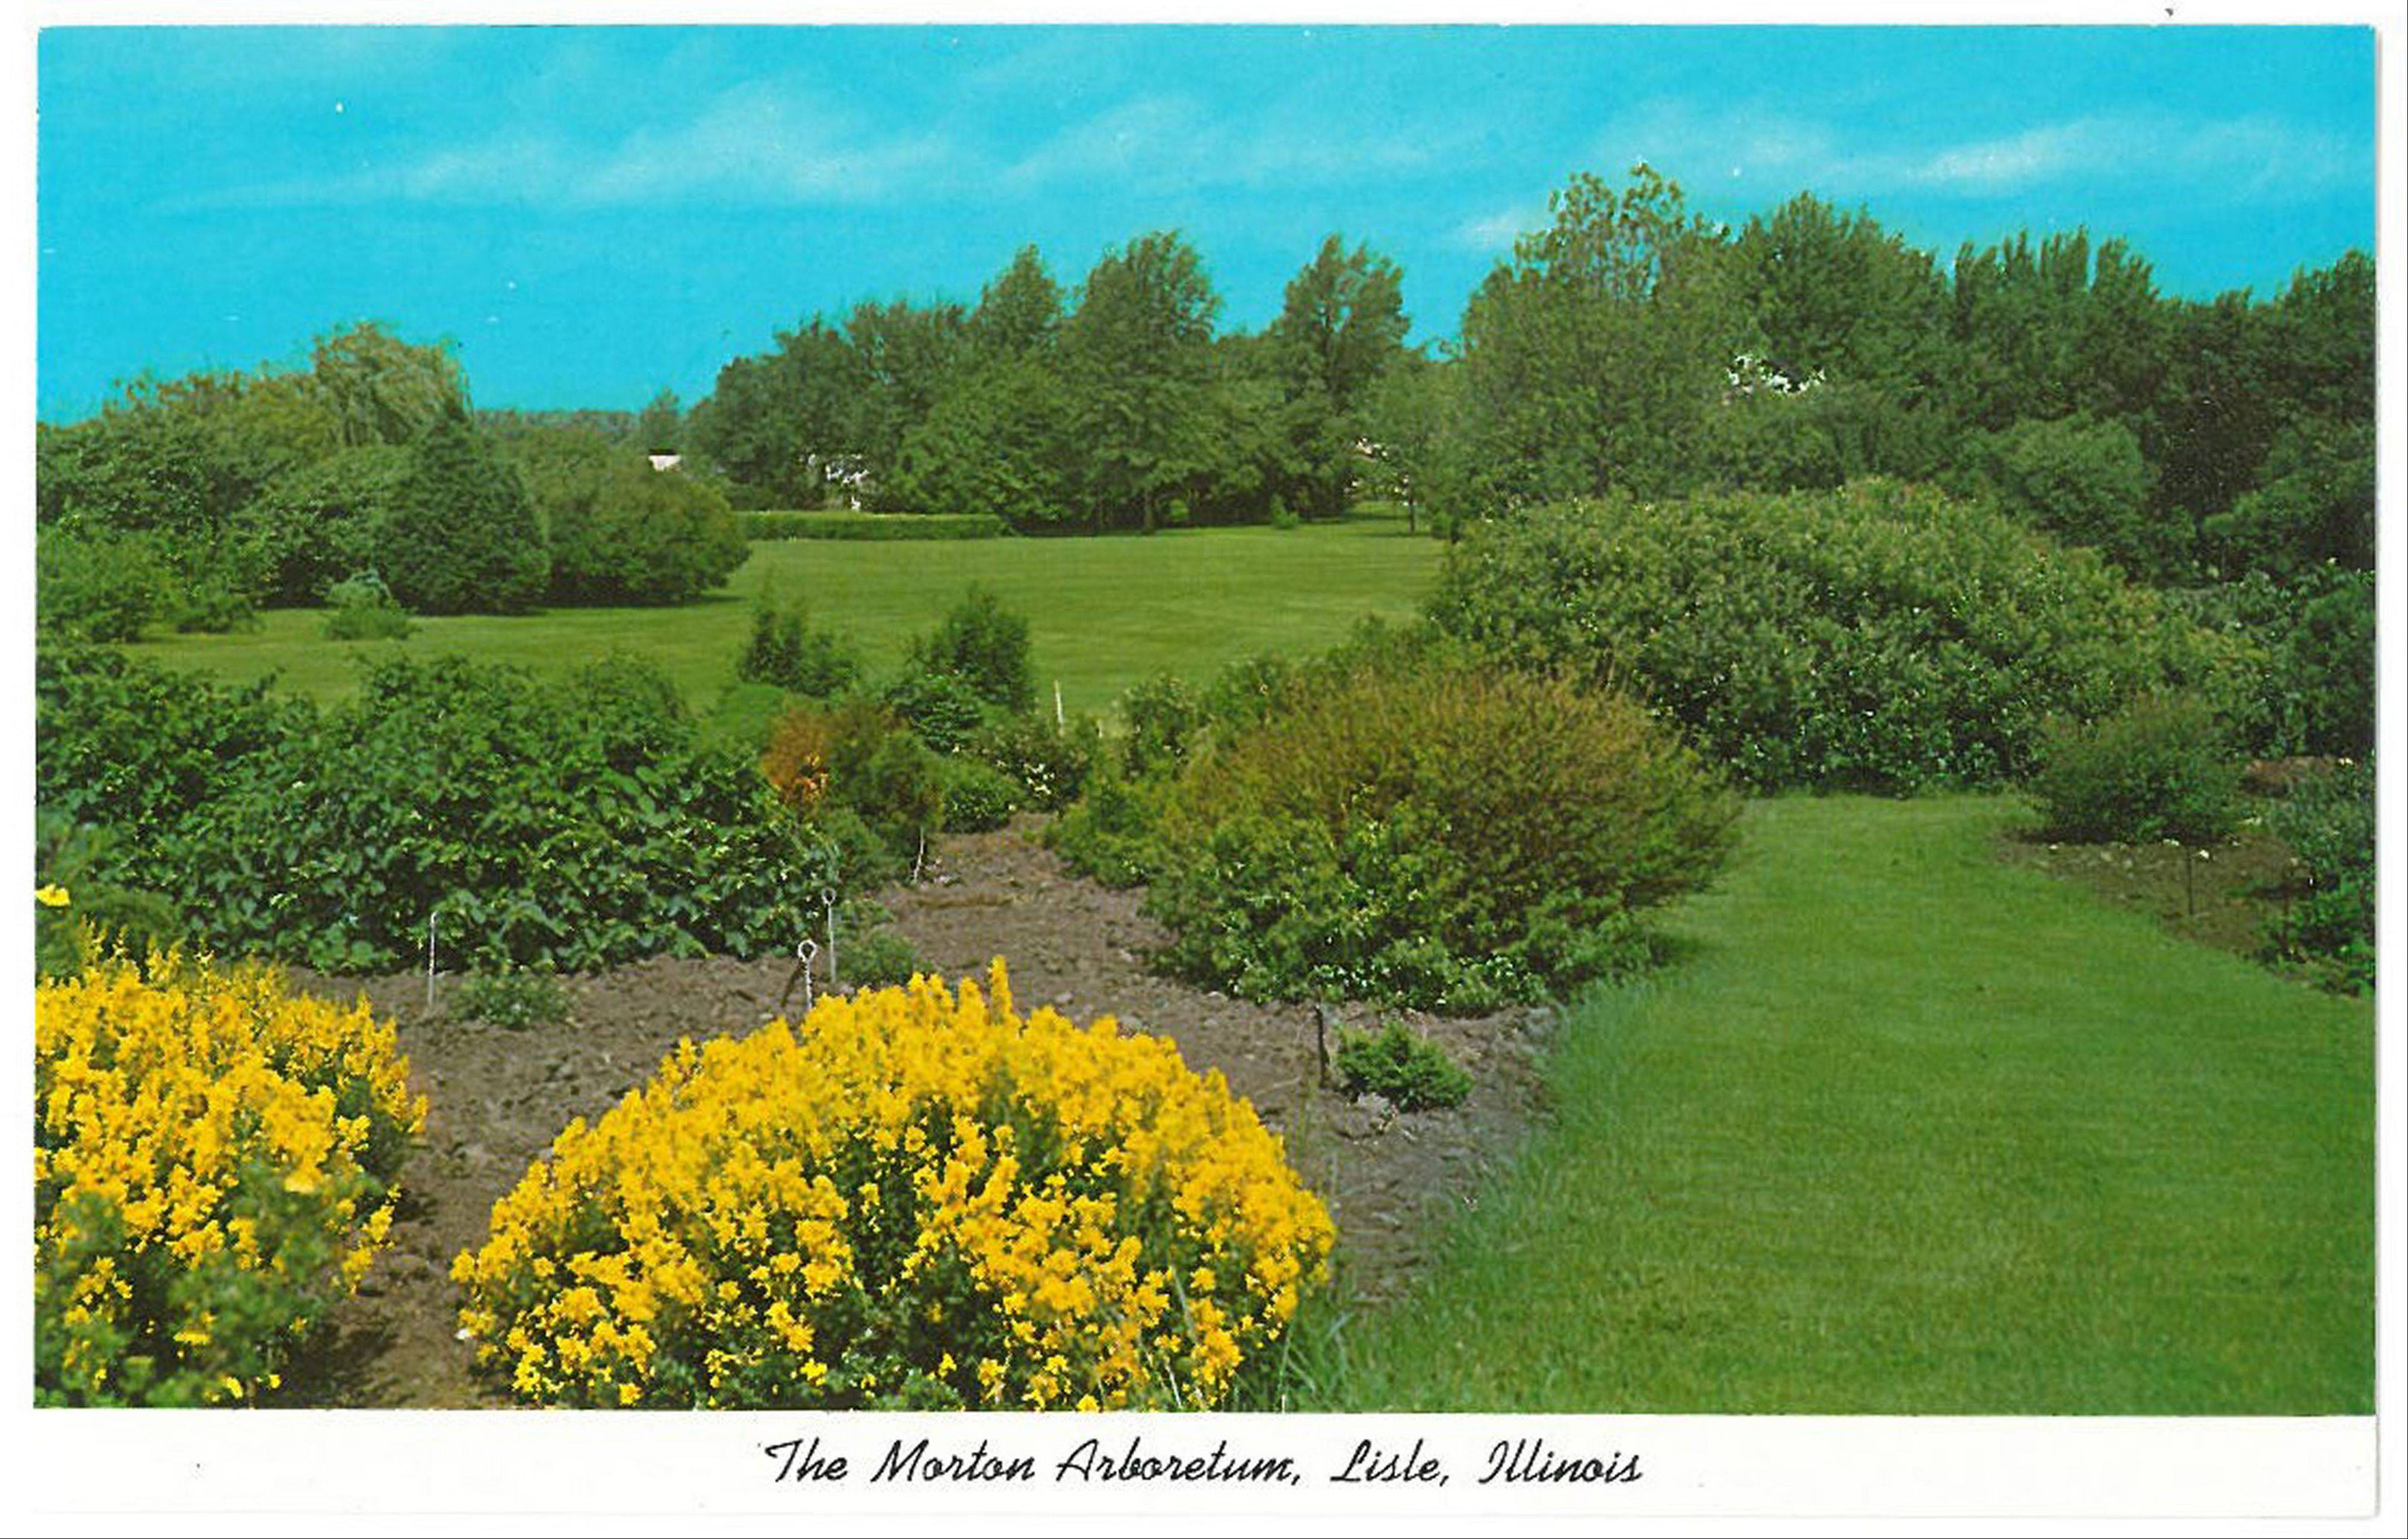 The image of Morton Arboretum's grounds from 1966 still could serve as a memento from a modern-day outing.